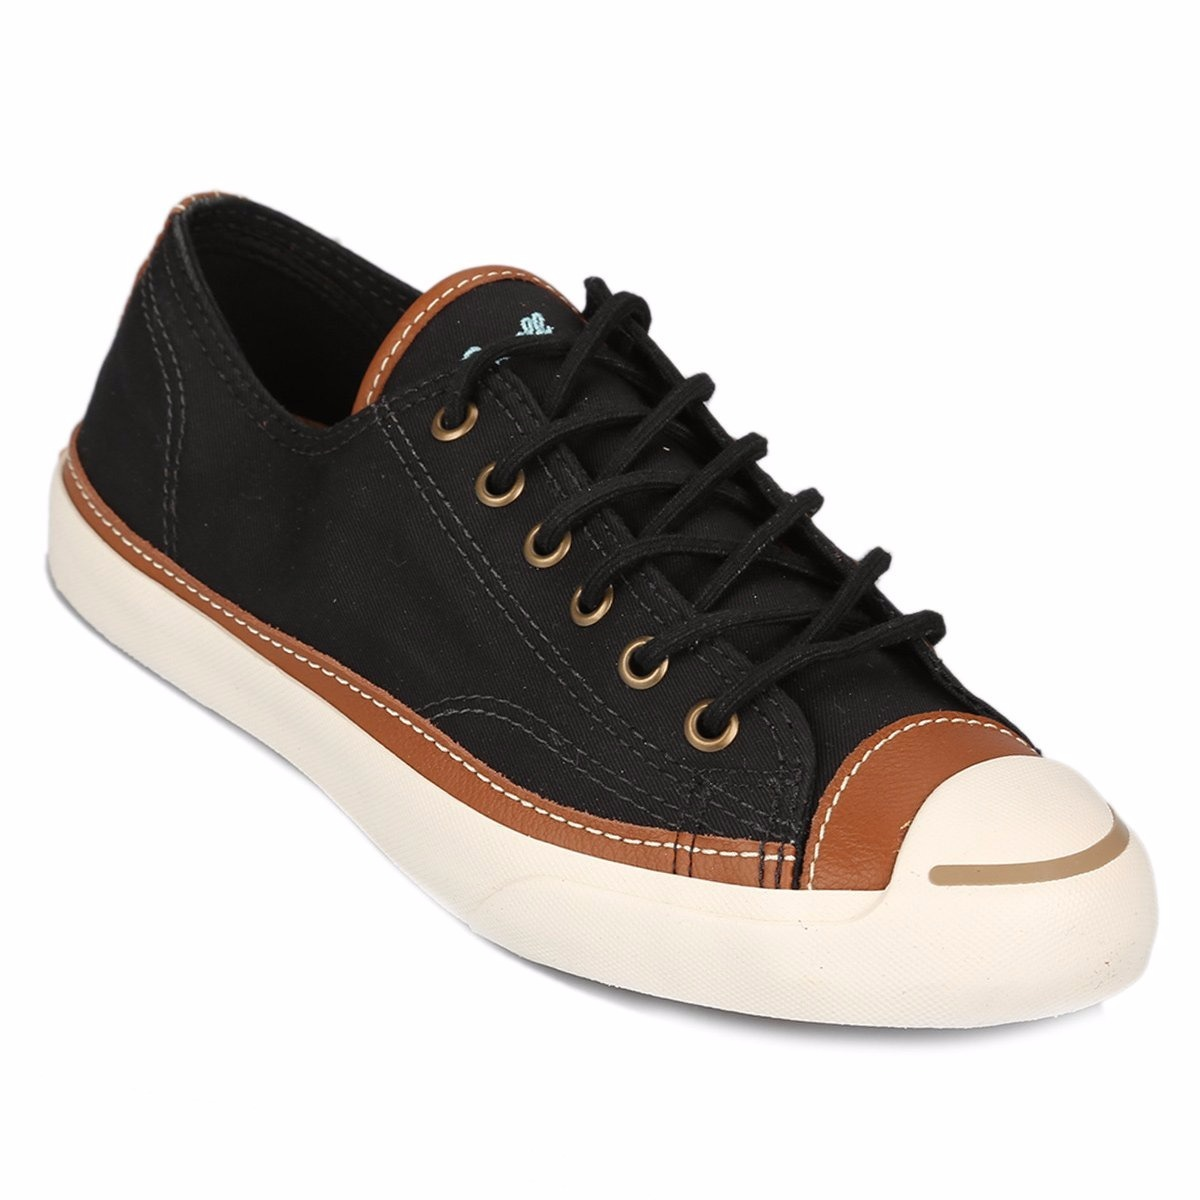 ef57843b Zapatillas Converse All Star Jack Purcell Ltt Ox - $ 3.899,99 en ...